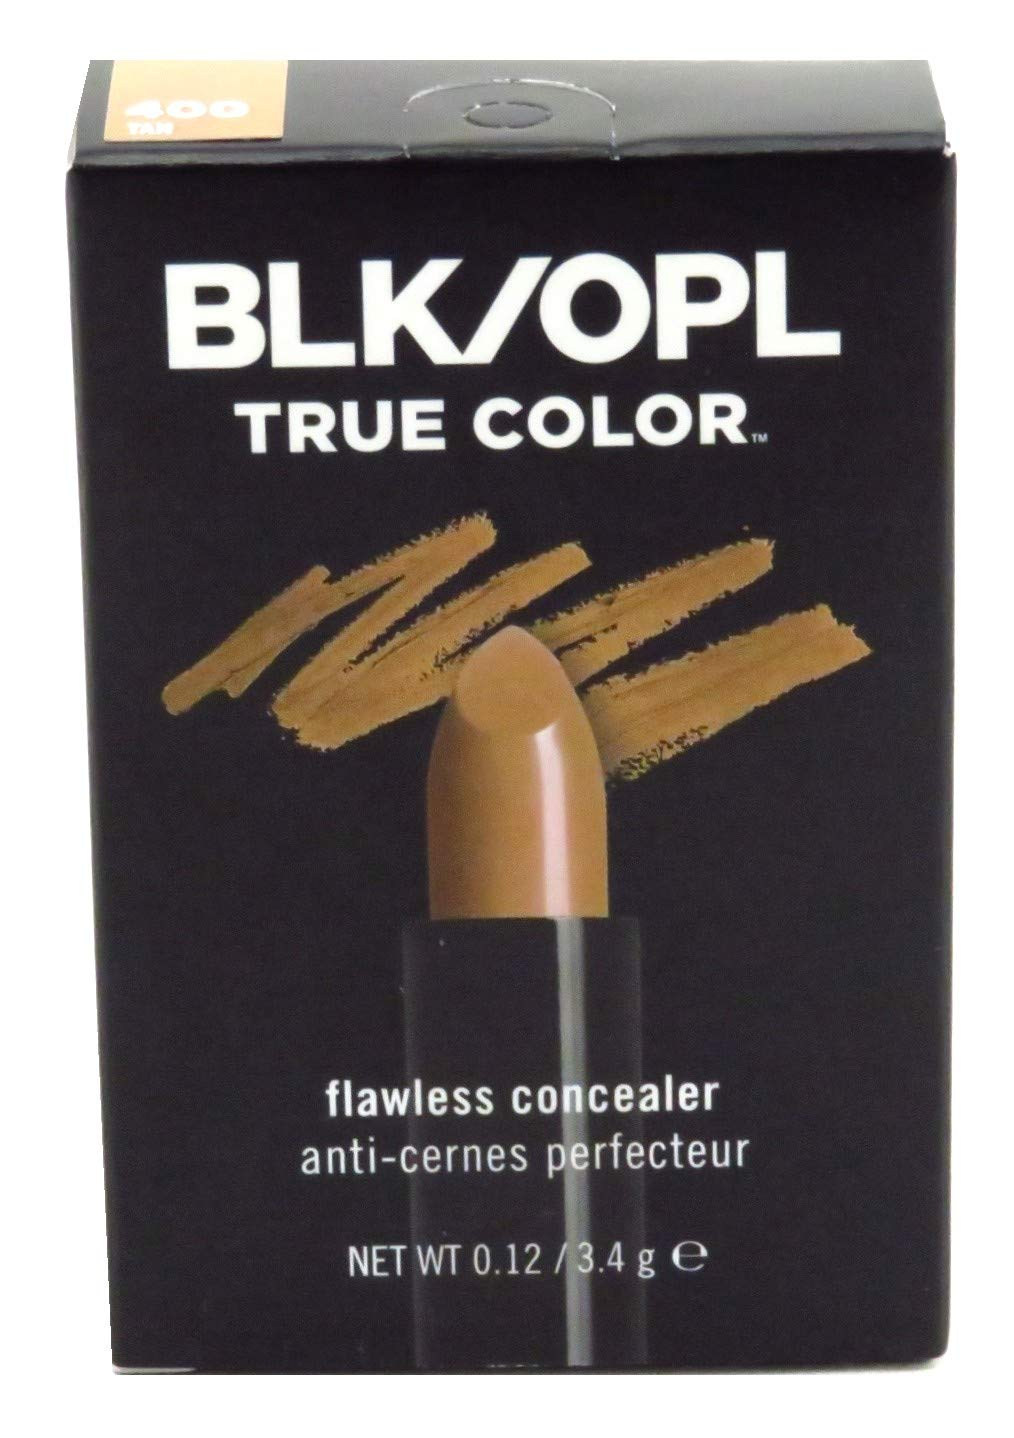 Black Opal Flawless Concealer Tan 1404-004